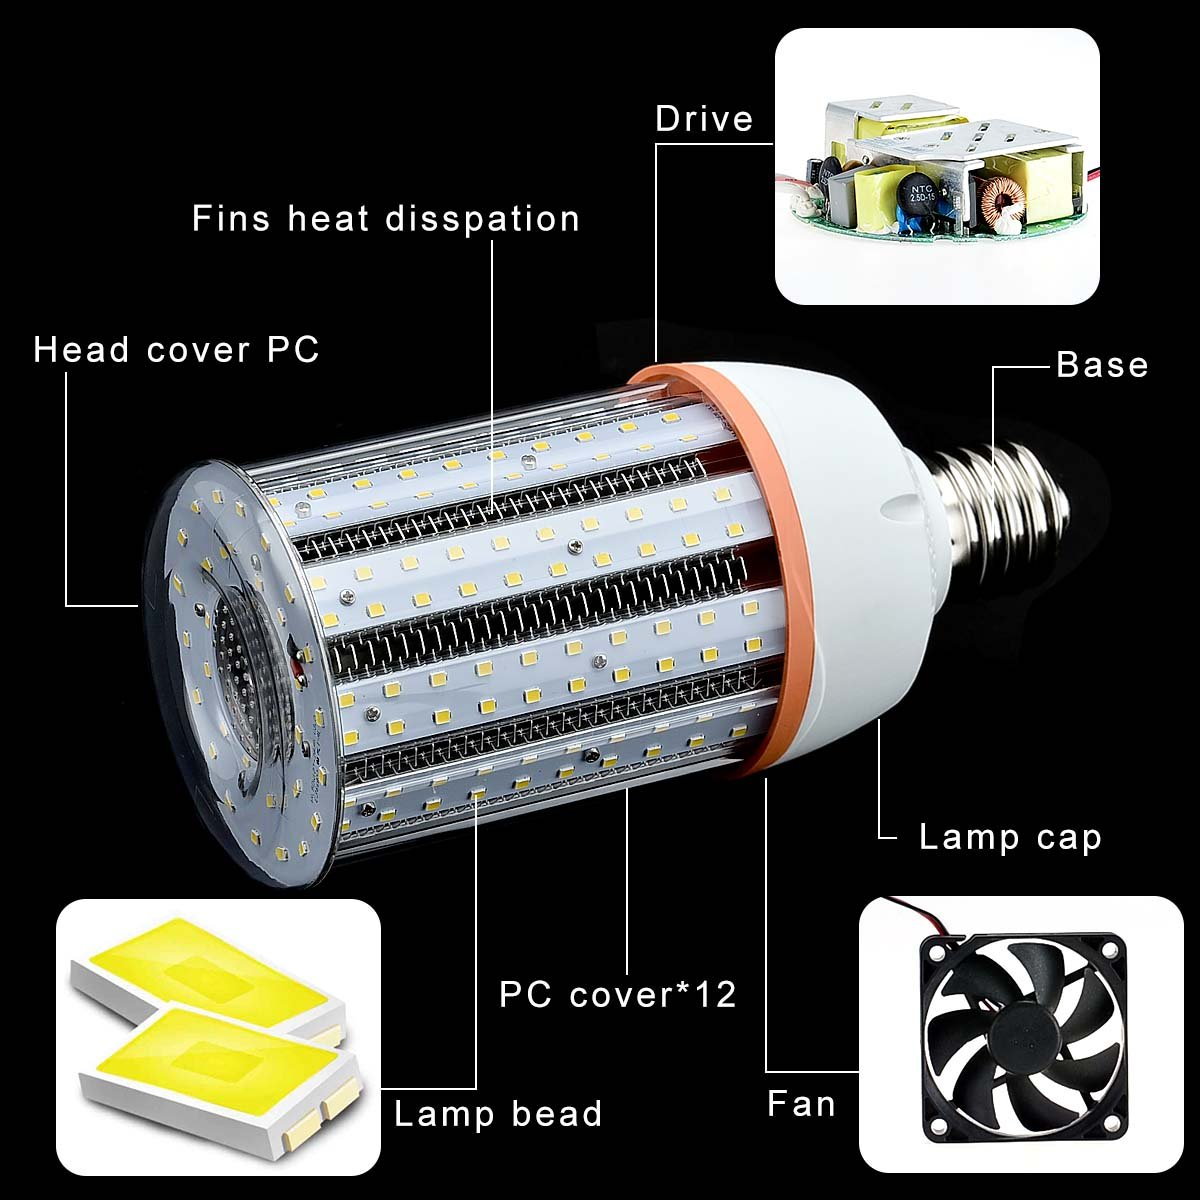 Phenas 30W LED Corn Light Bulb for Indoor Outdoor Large Area for Street Lamp Post Lighting Garage Factory Warehouse High Bay Barn Porch Backyard Large Mogul Screw Base E39 5000Lm 5000K Day White